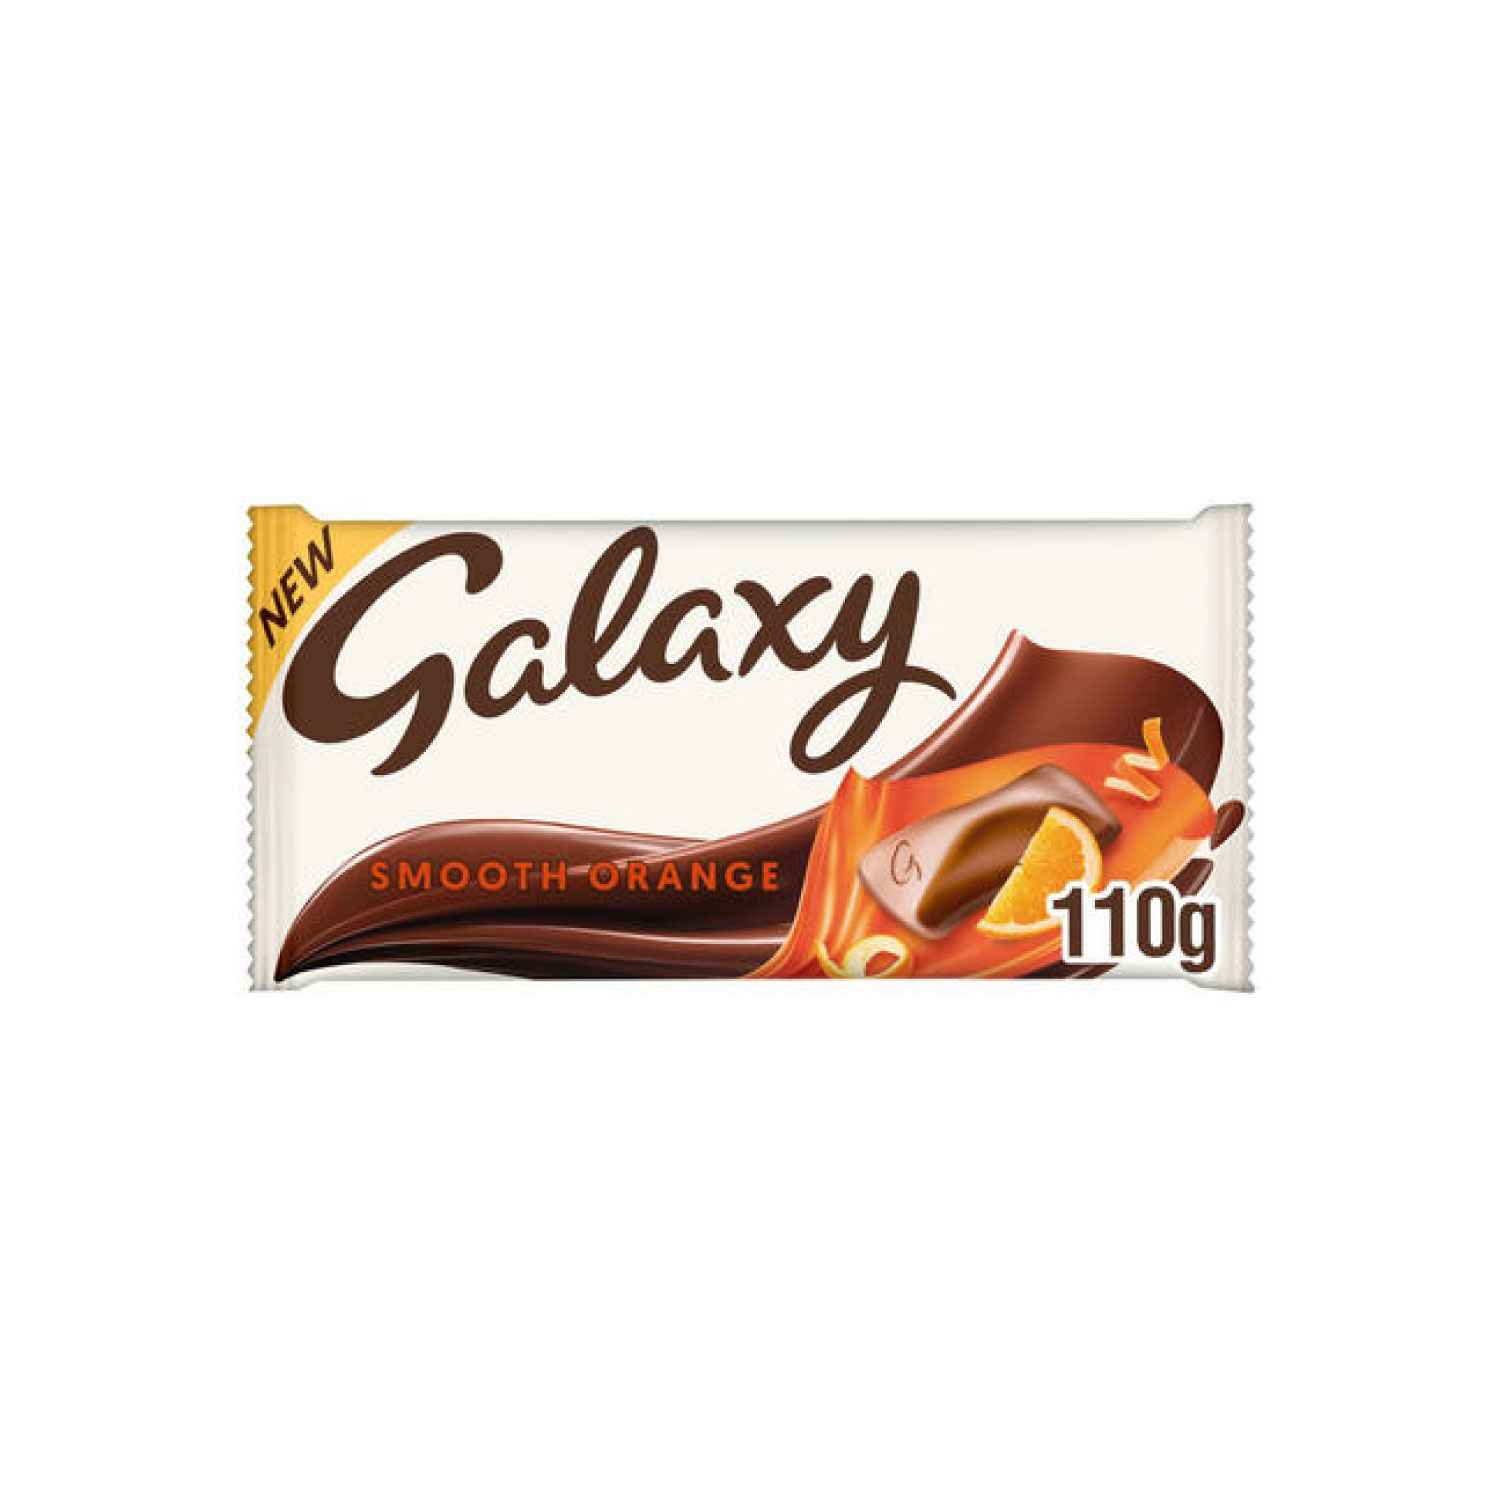 Galaxy Smooth Orange Chocolate Bar